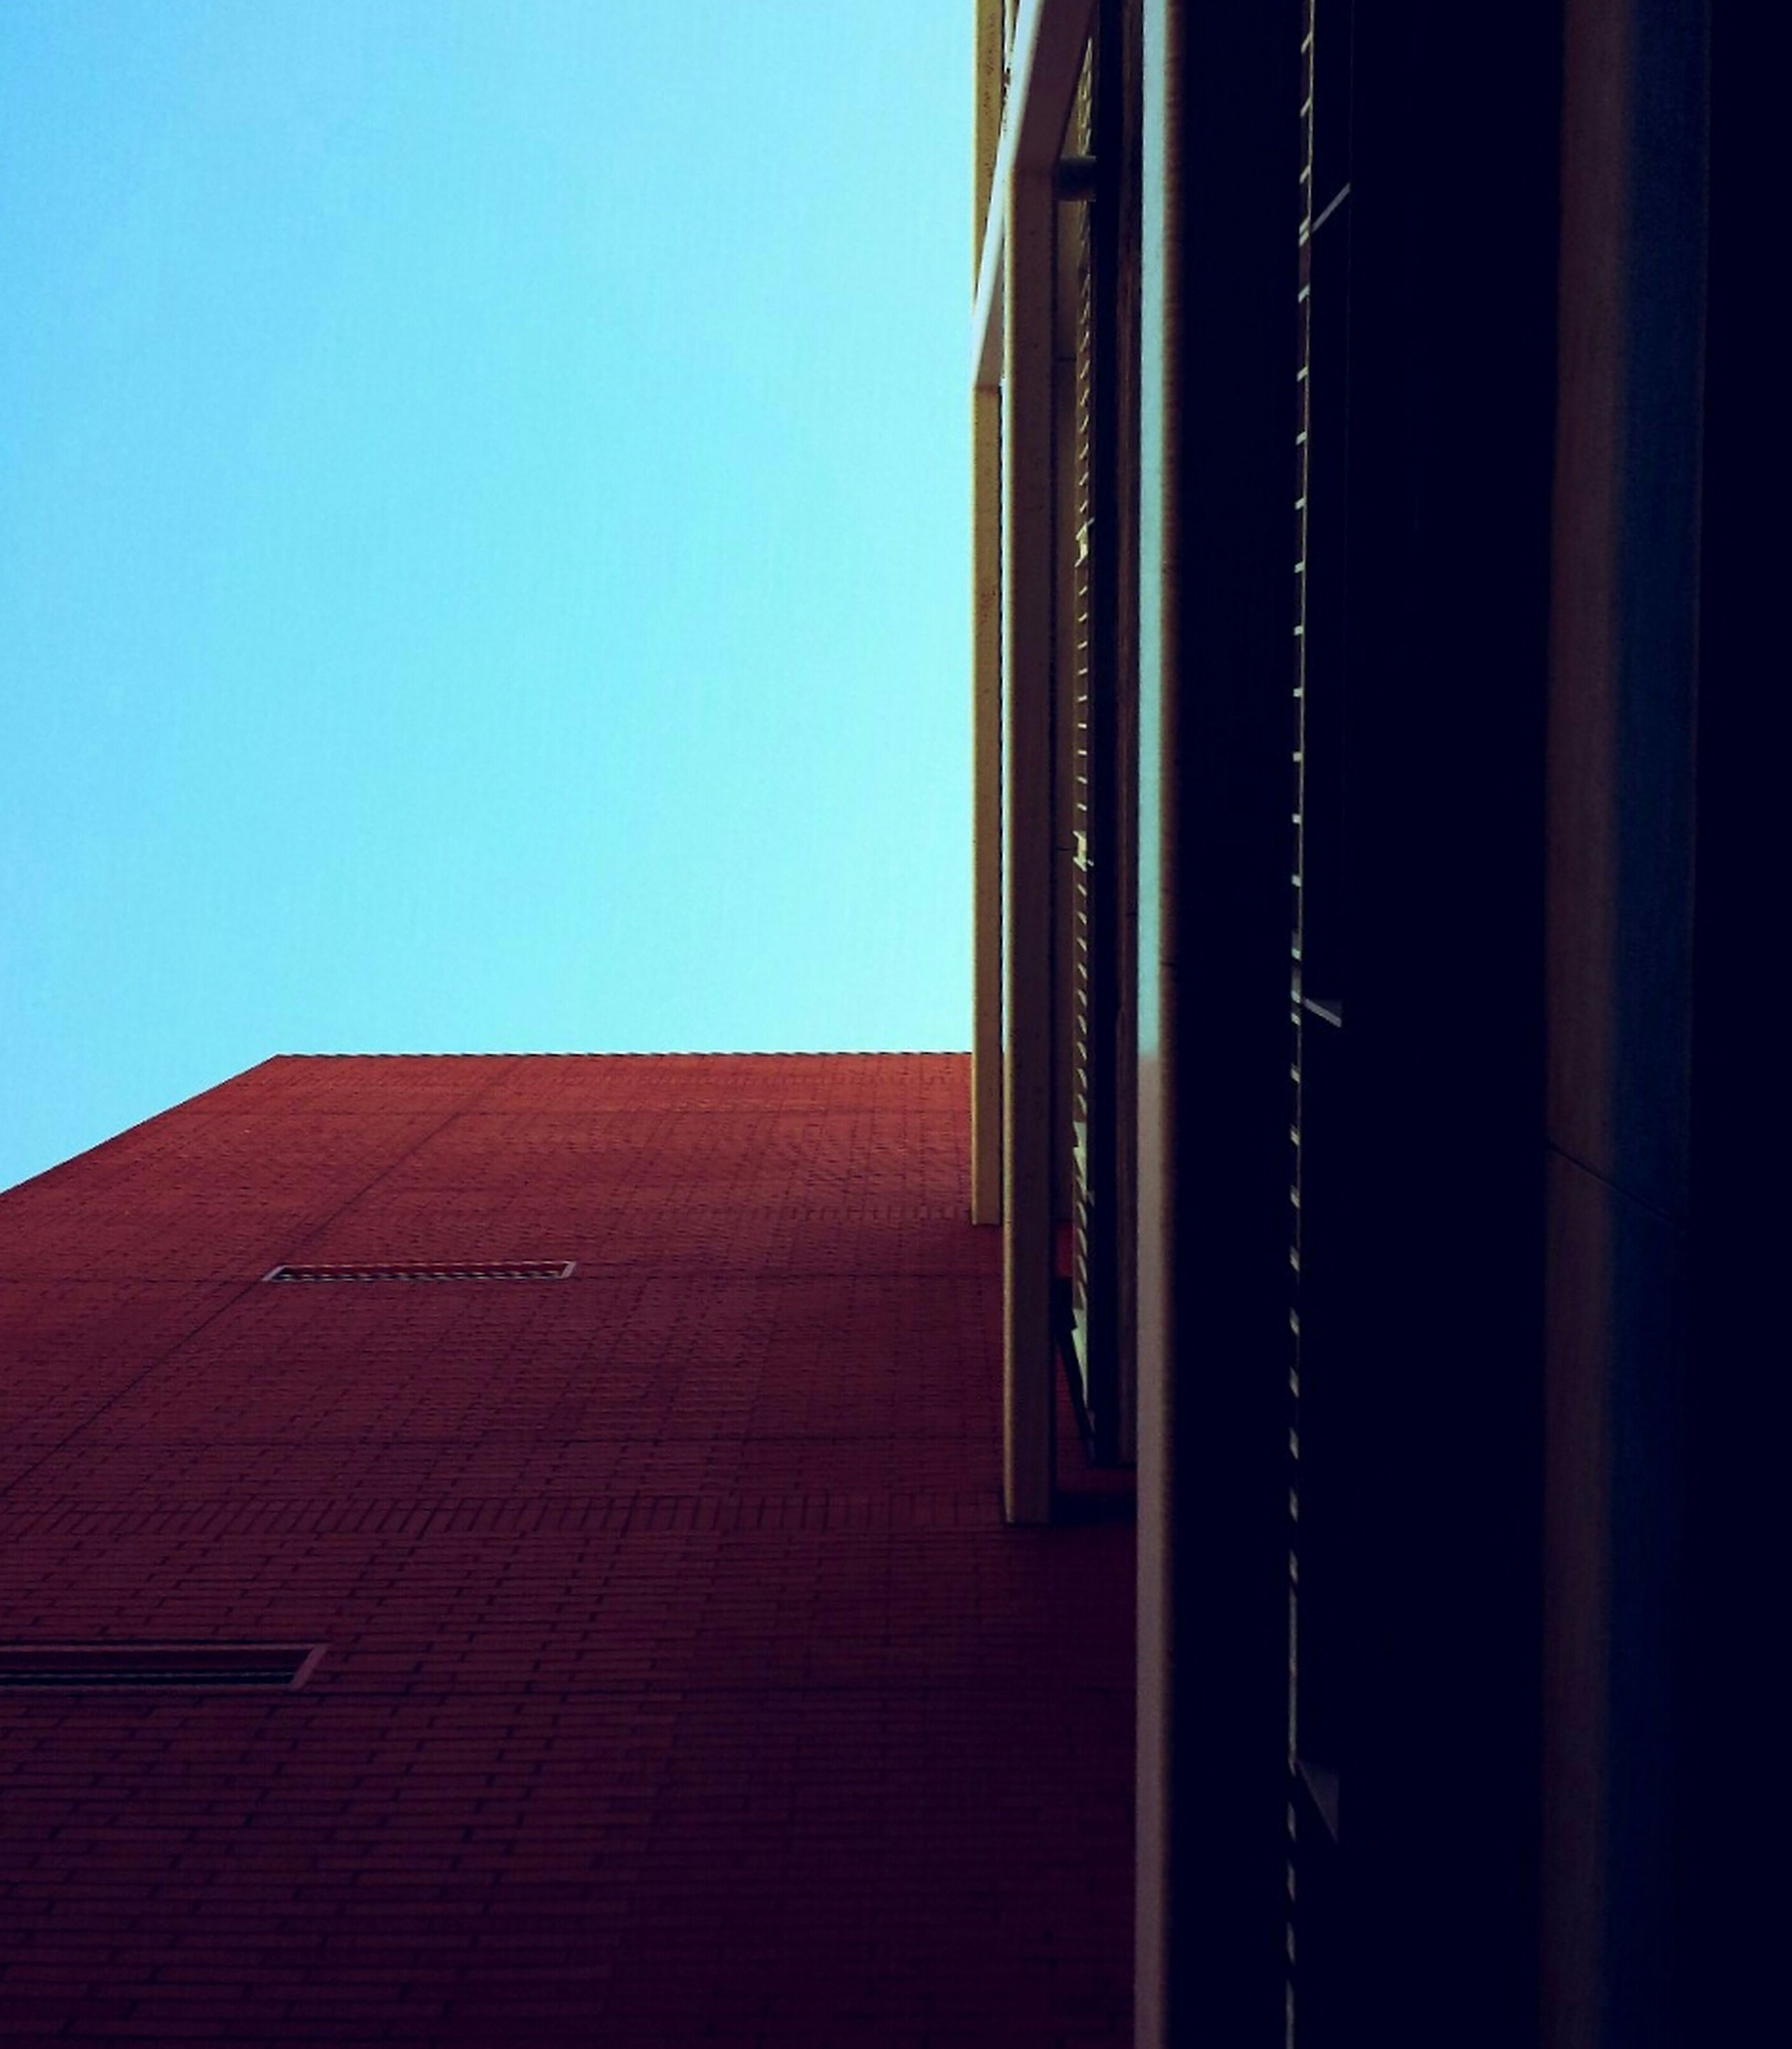 architecture, built structure, building exterior, low angle view, clear sky, building, window, city, copy space, outdoors, no people, day, residential structure, blue, brick wall, residential building, sky, high section, wall - building feature, exterior